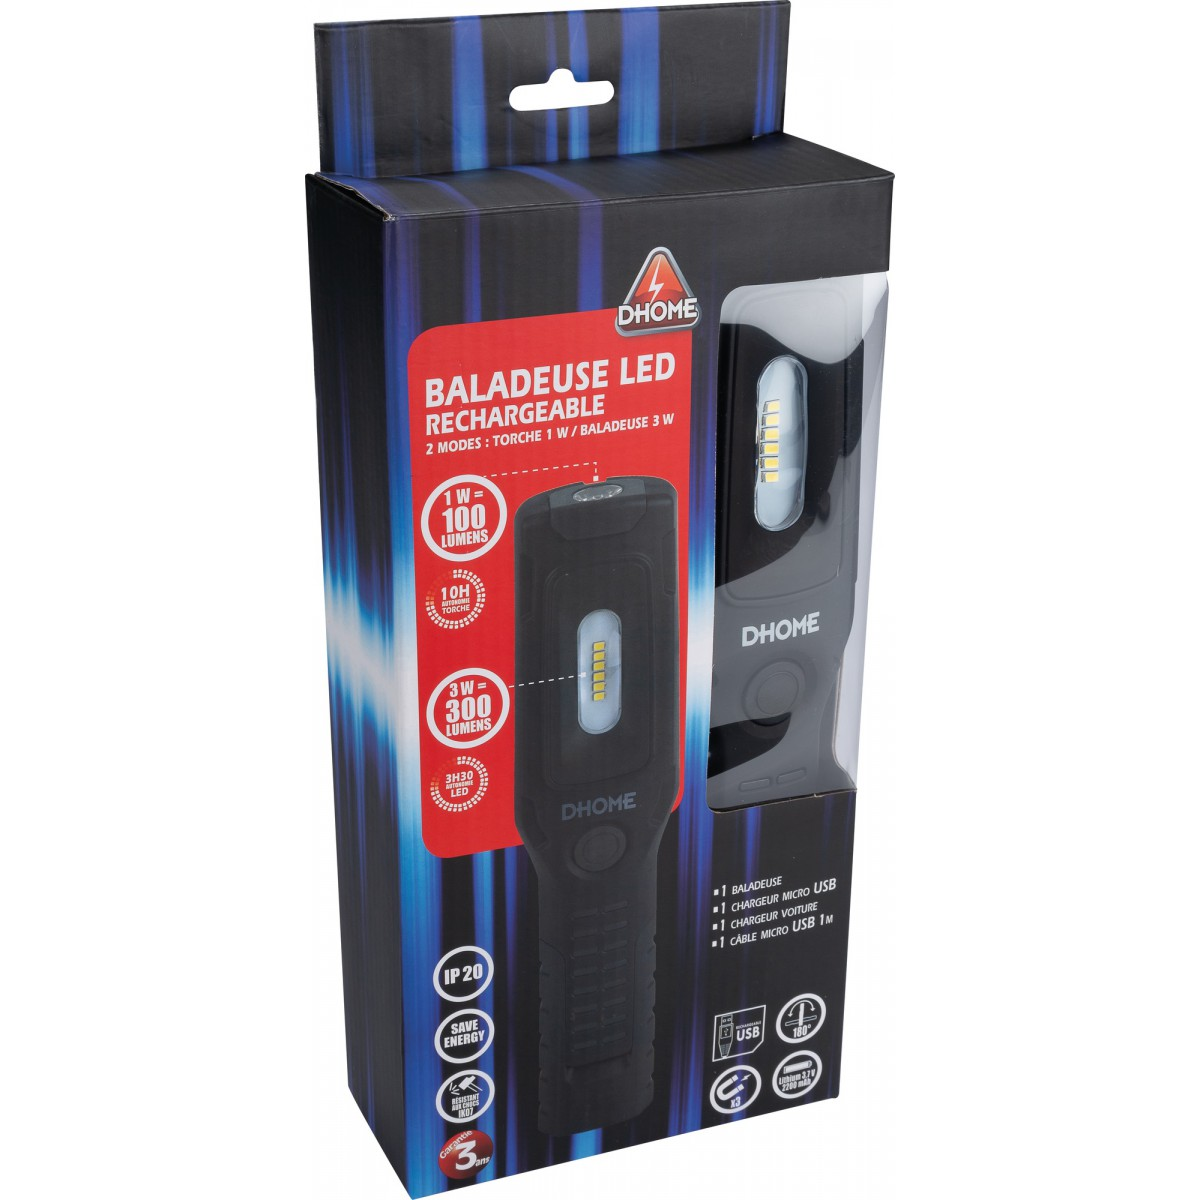 Baladeuse rechargeable 2 modes